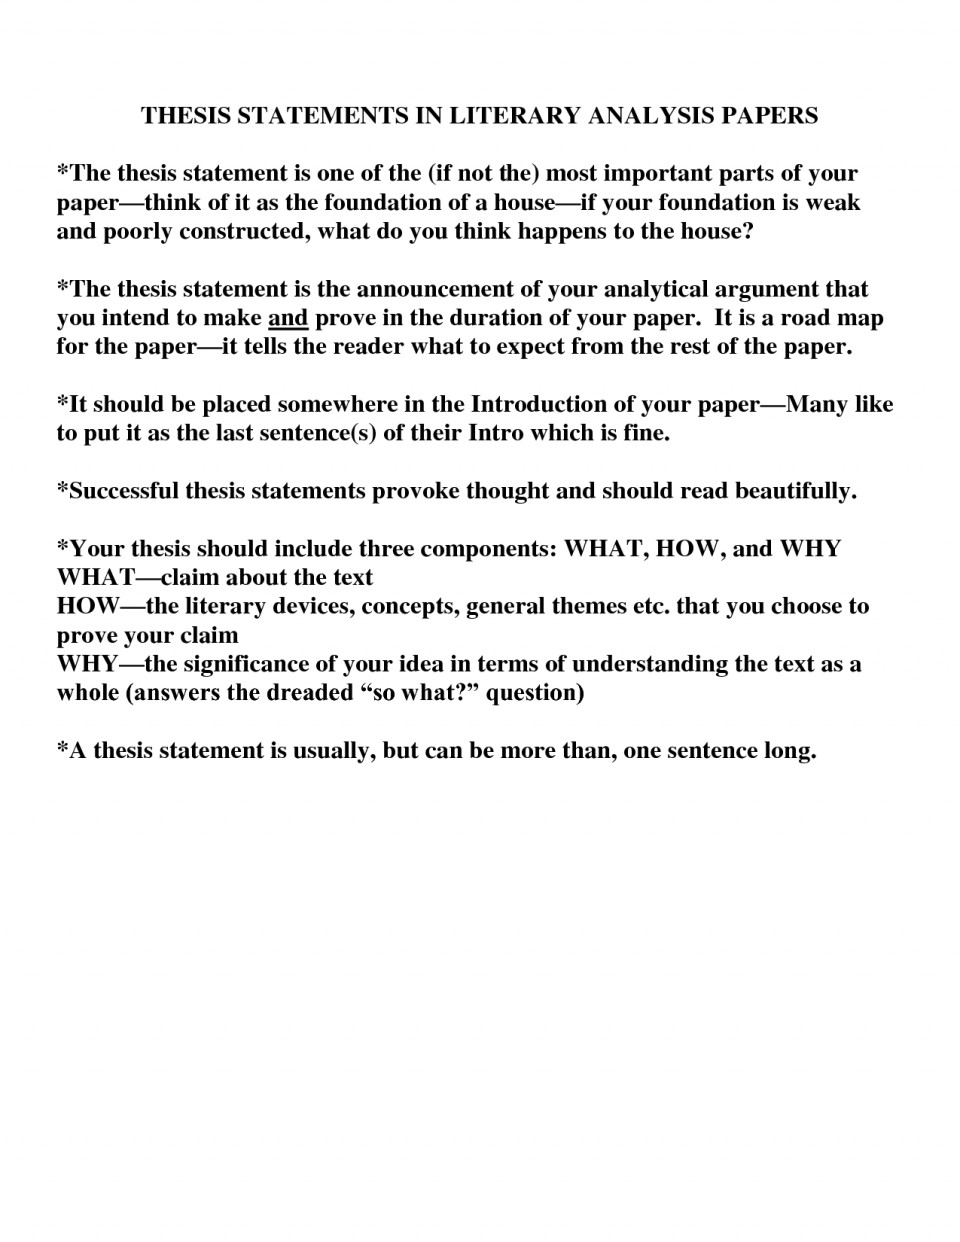 006 Img151266 Thesis For Research Wonderful A Paper Statement On The Holocaust Free Generator Example Pdf 960